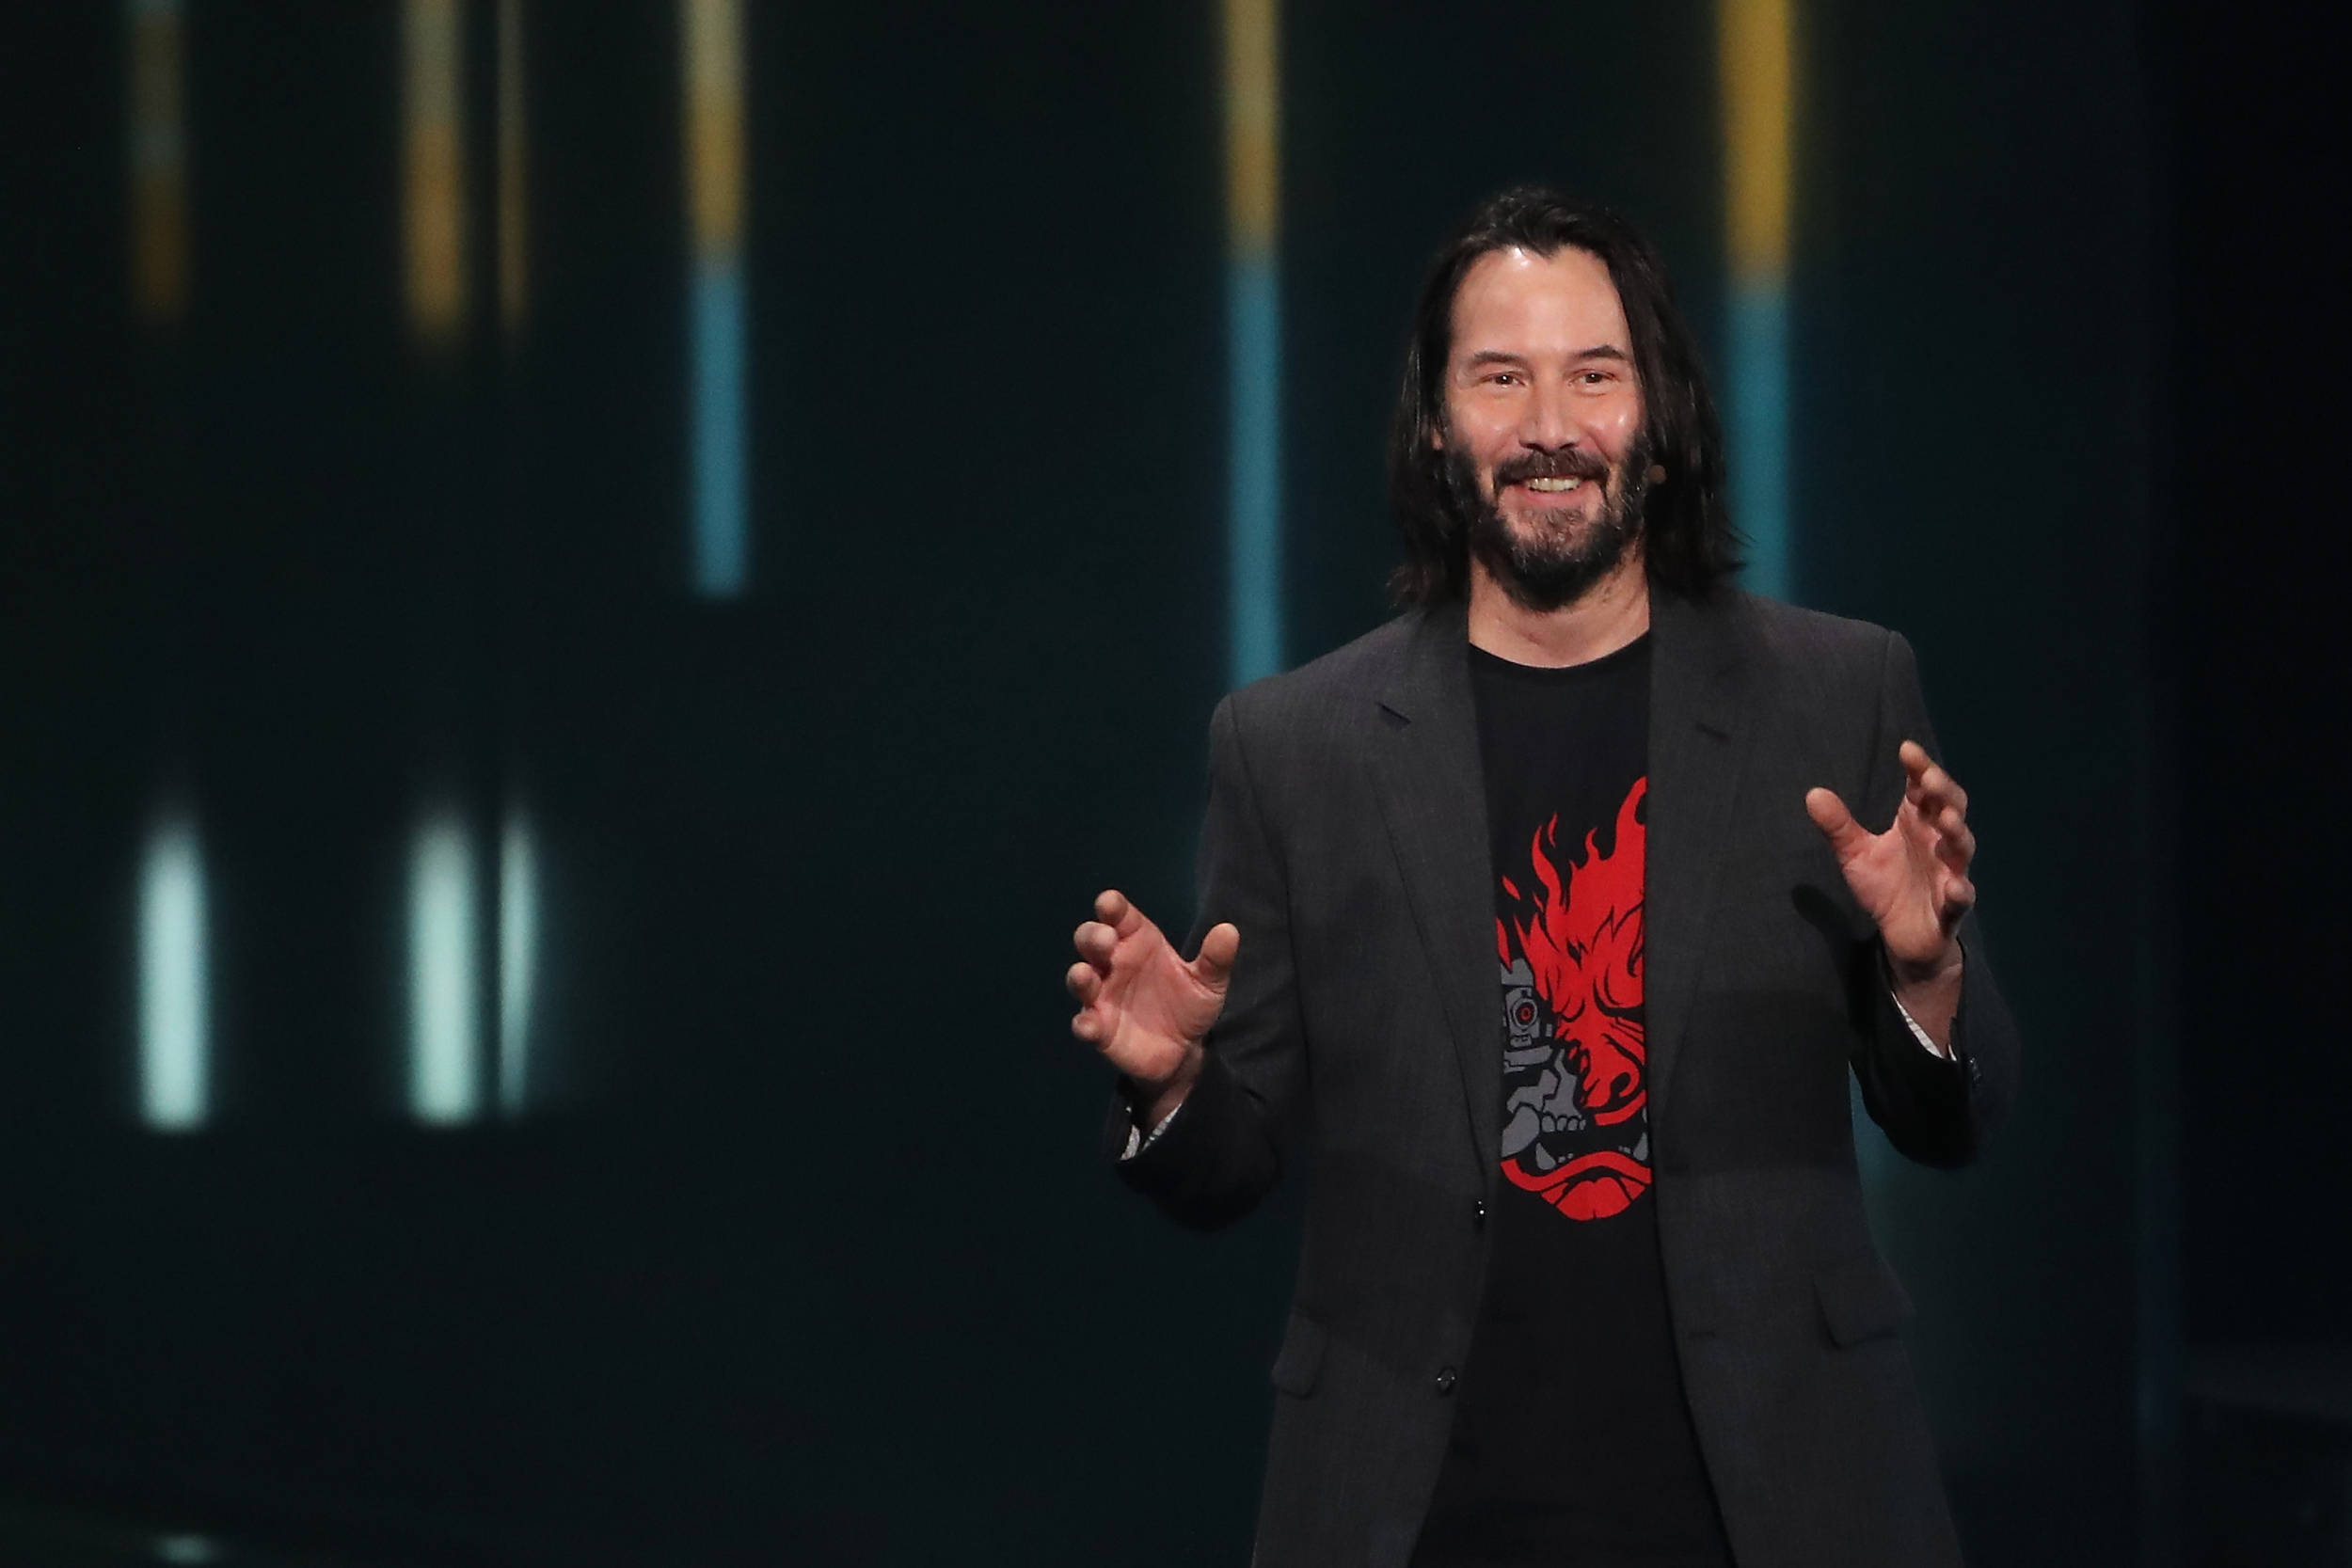 keanu-reeves-e3-press-conference-2019.jpg